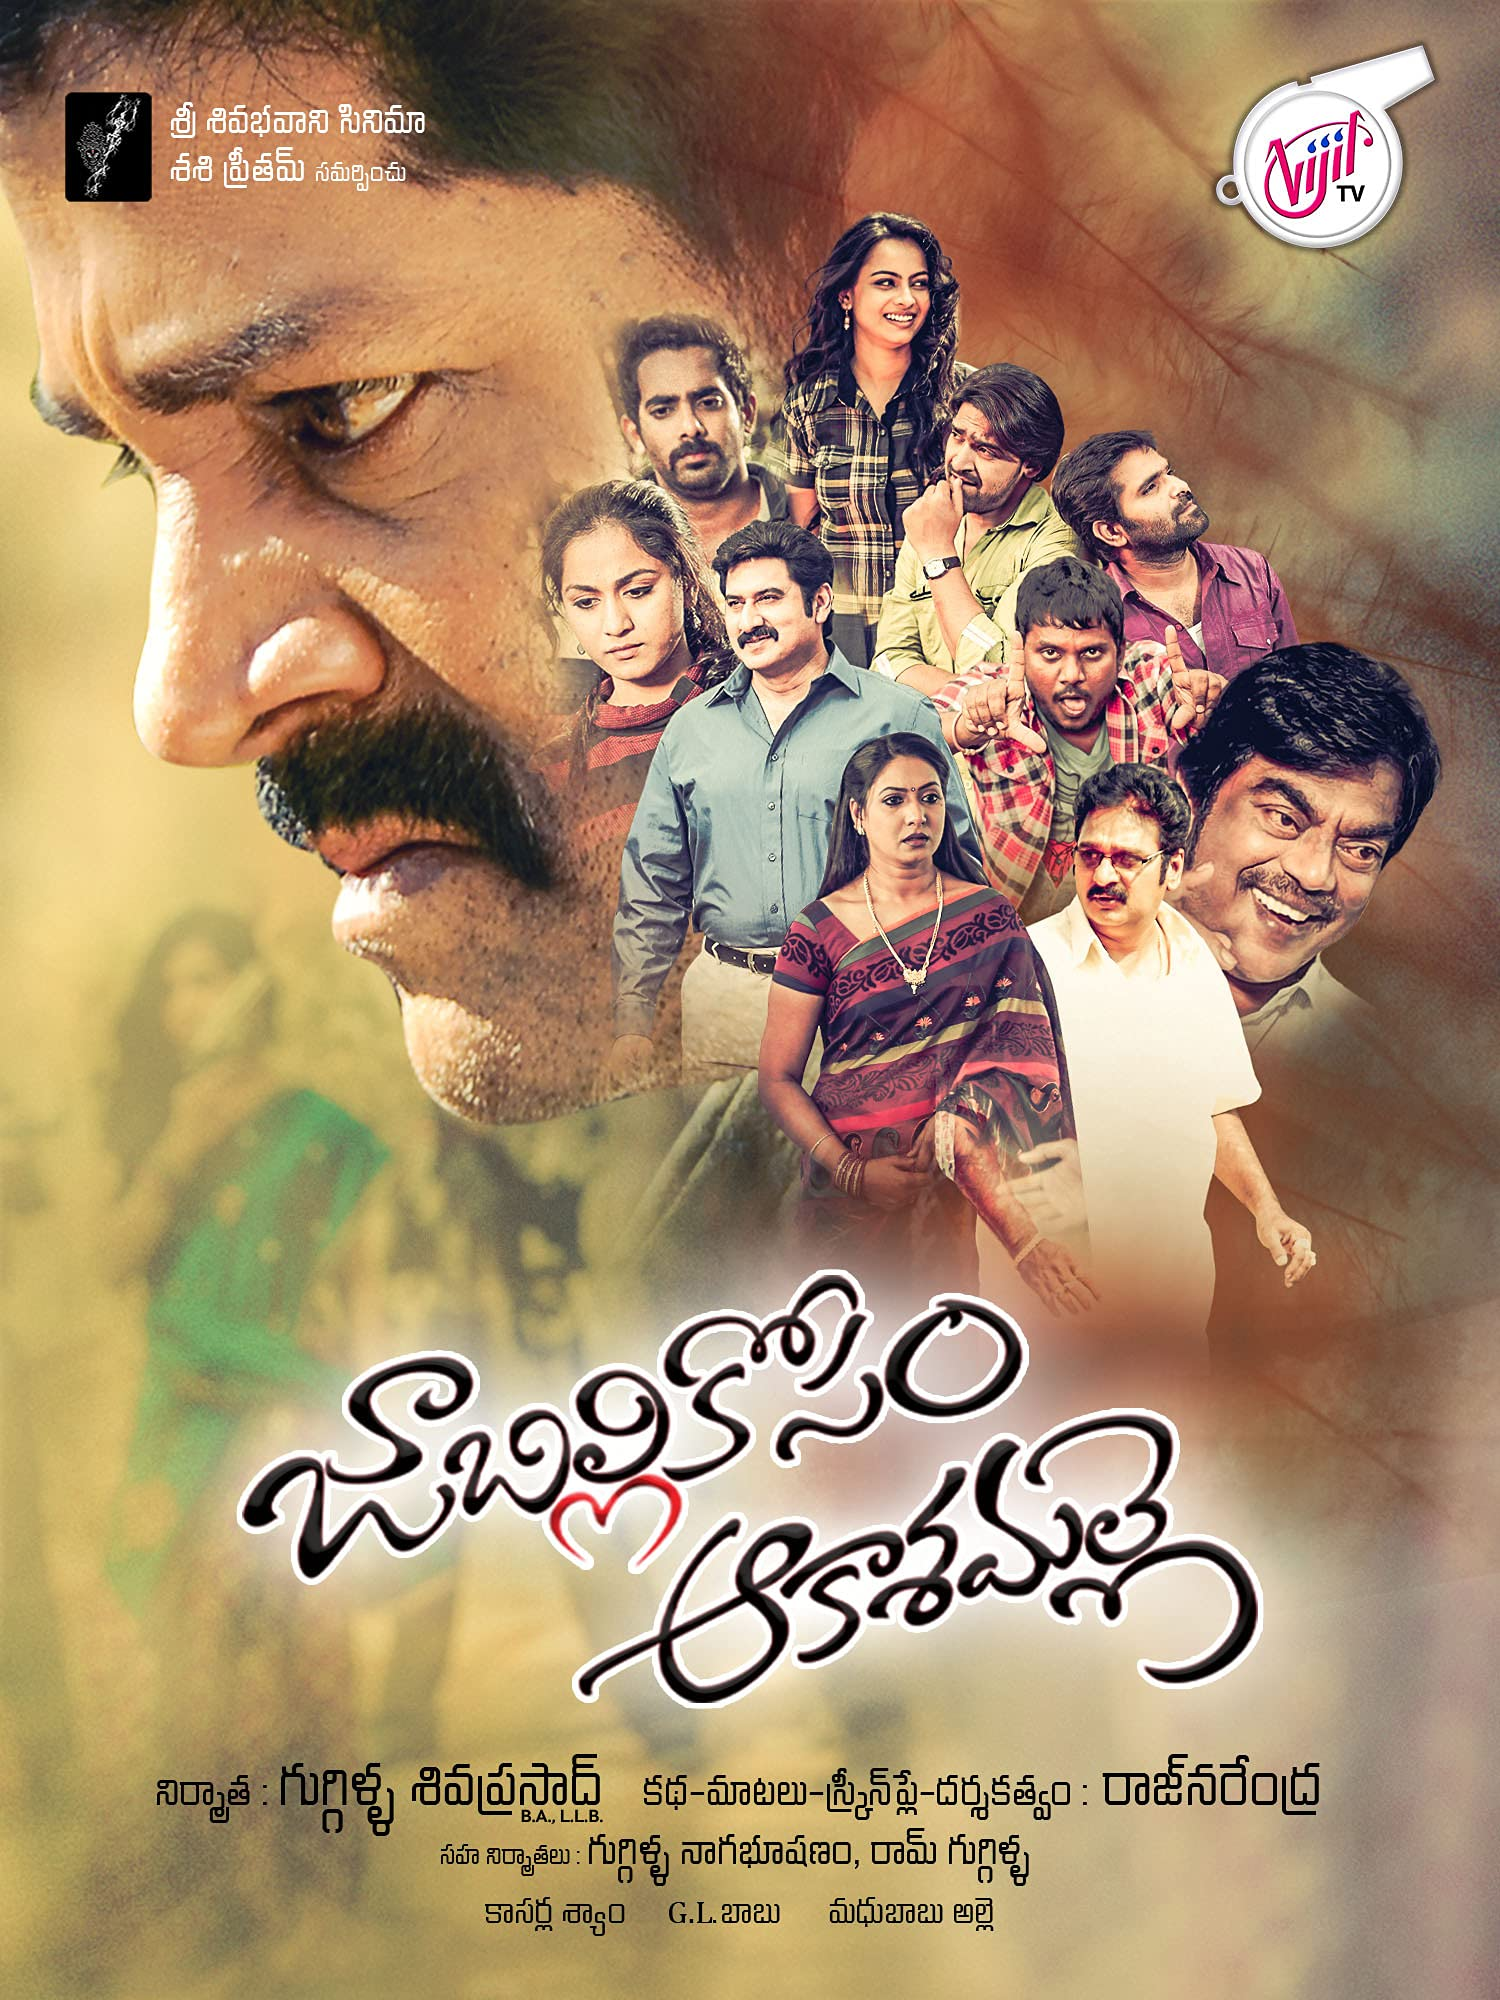 Jabilli Kosam Akasamalle 2021 Telugu 720p HDRip ESubs 1.3GB Download